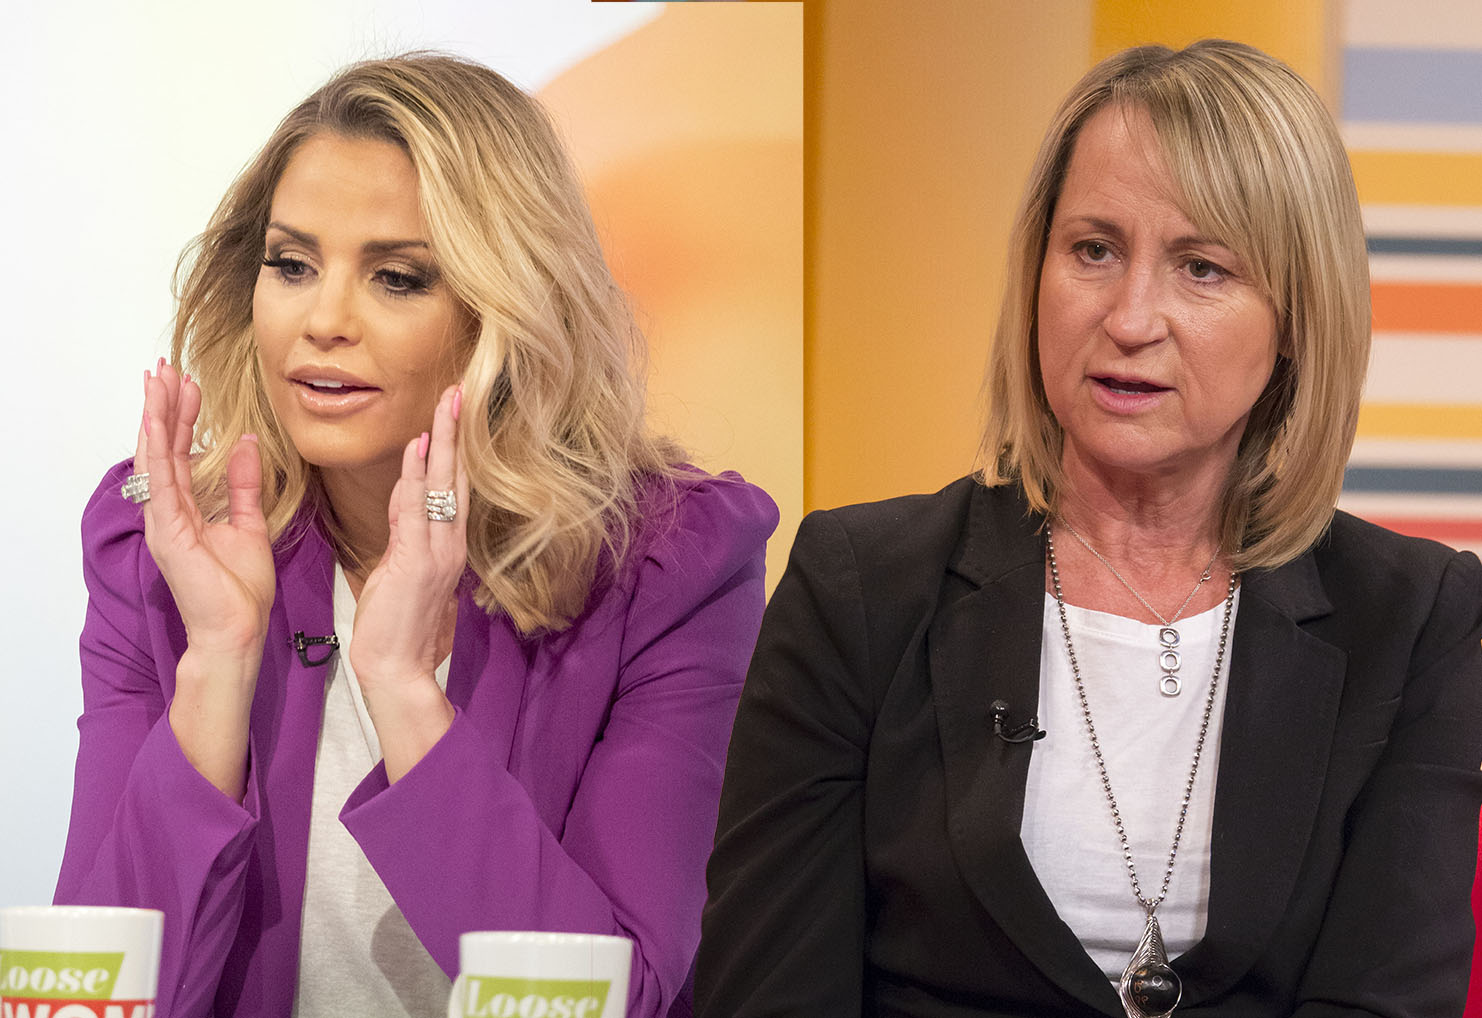 EDITORIAL USE ONLY. NO MERCHANDISING Mandatory Credit: Photo by Ken McKay/ITV/REX/Shutterstock (5618428as) Katie Price 'Loose Women' TV show, London, Britain - 23 Mar 2016